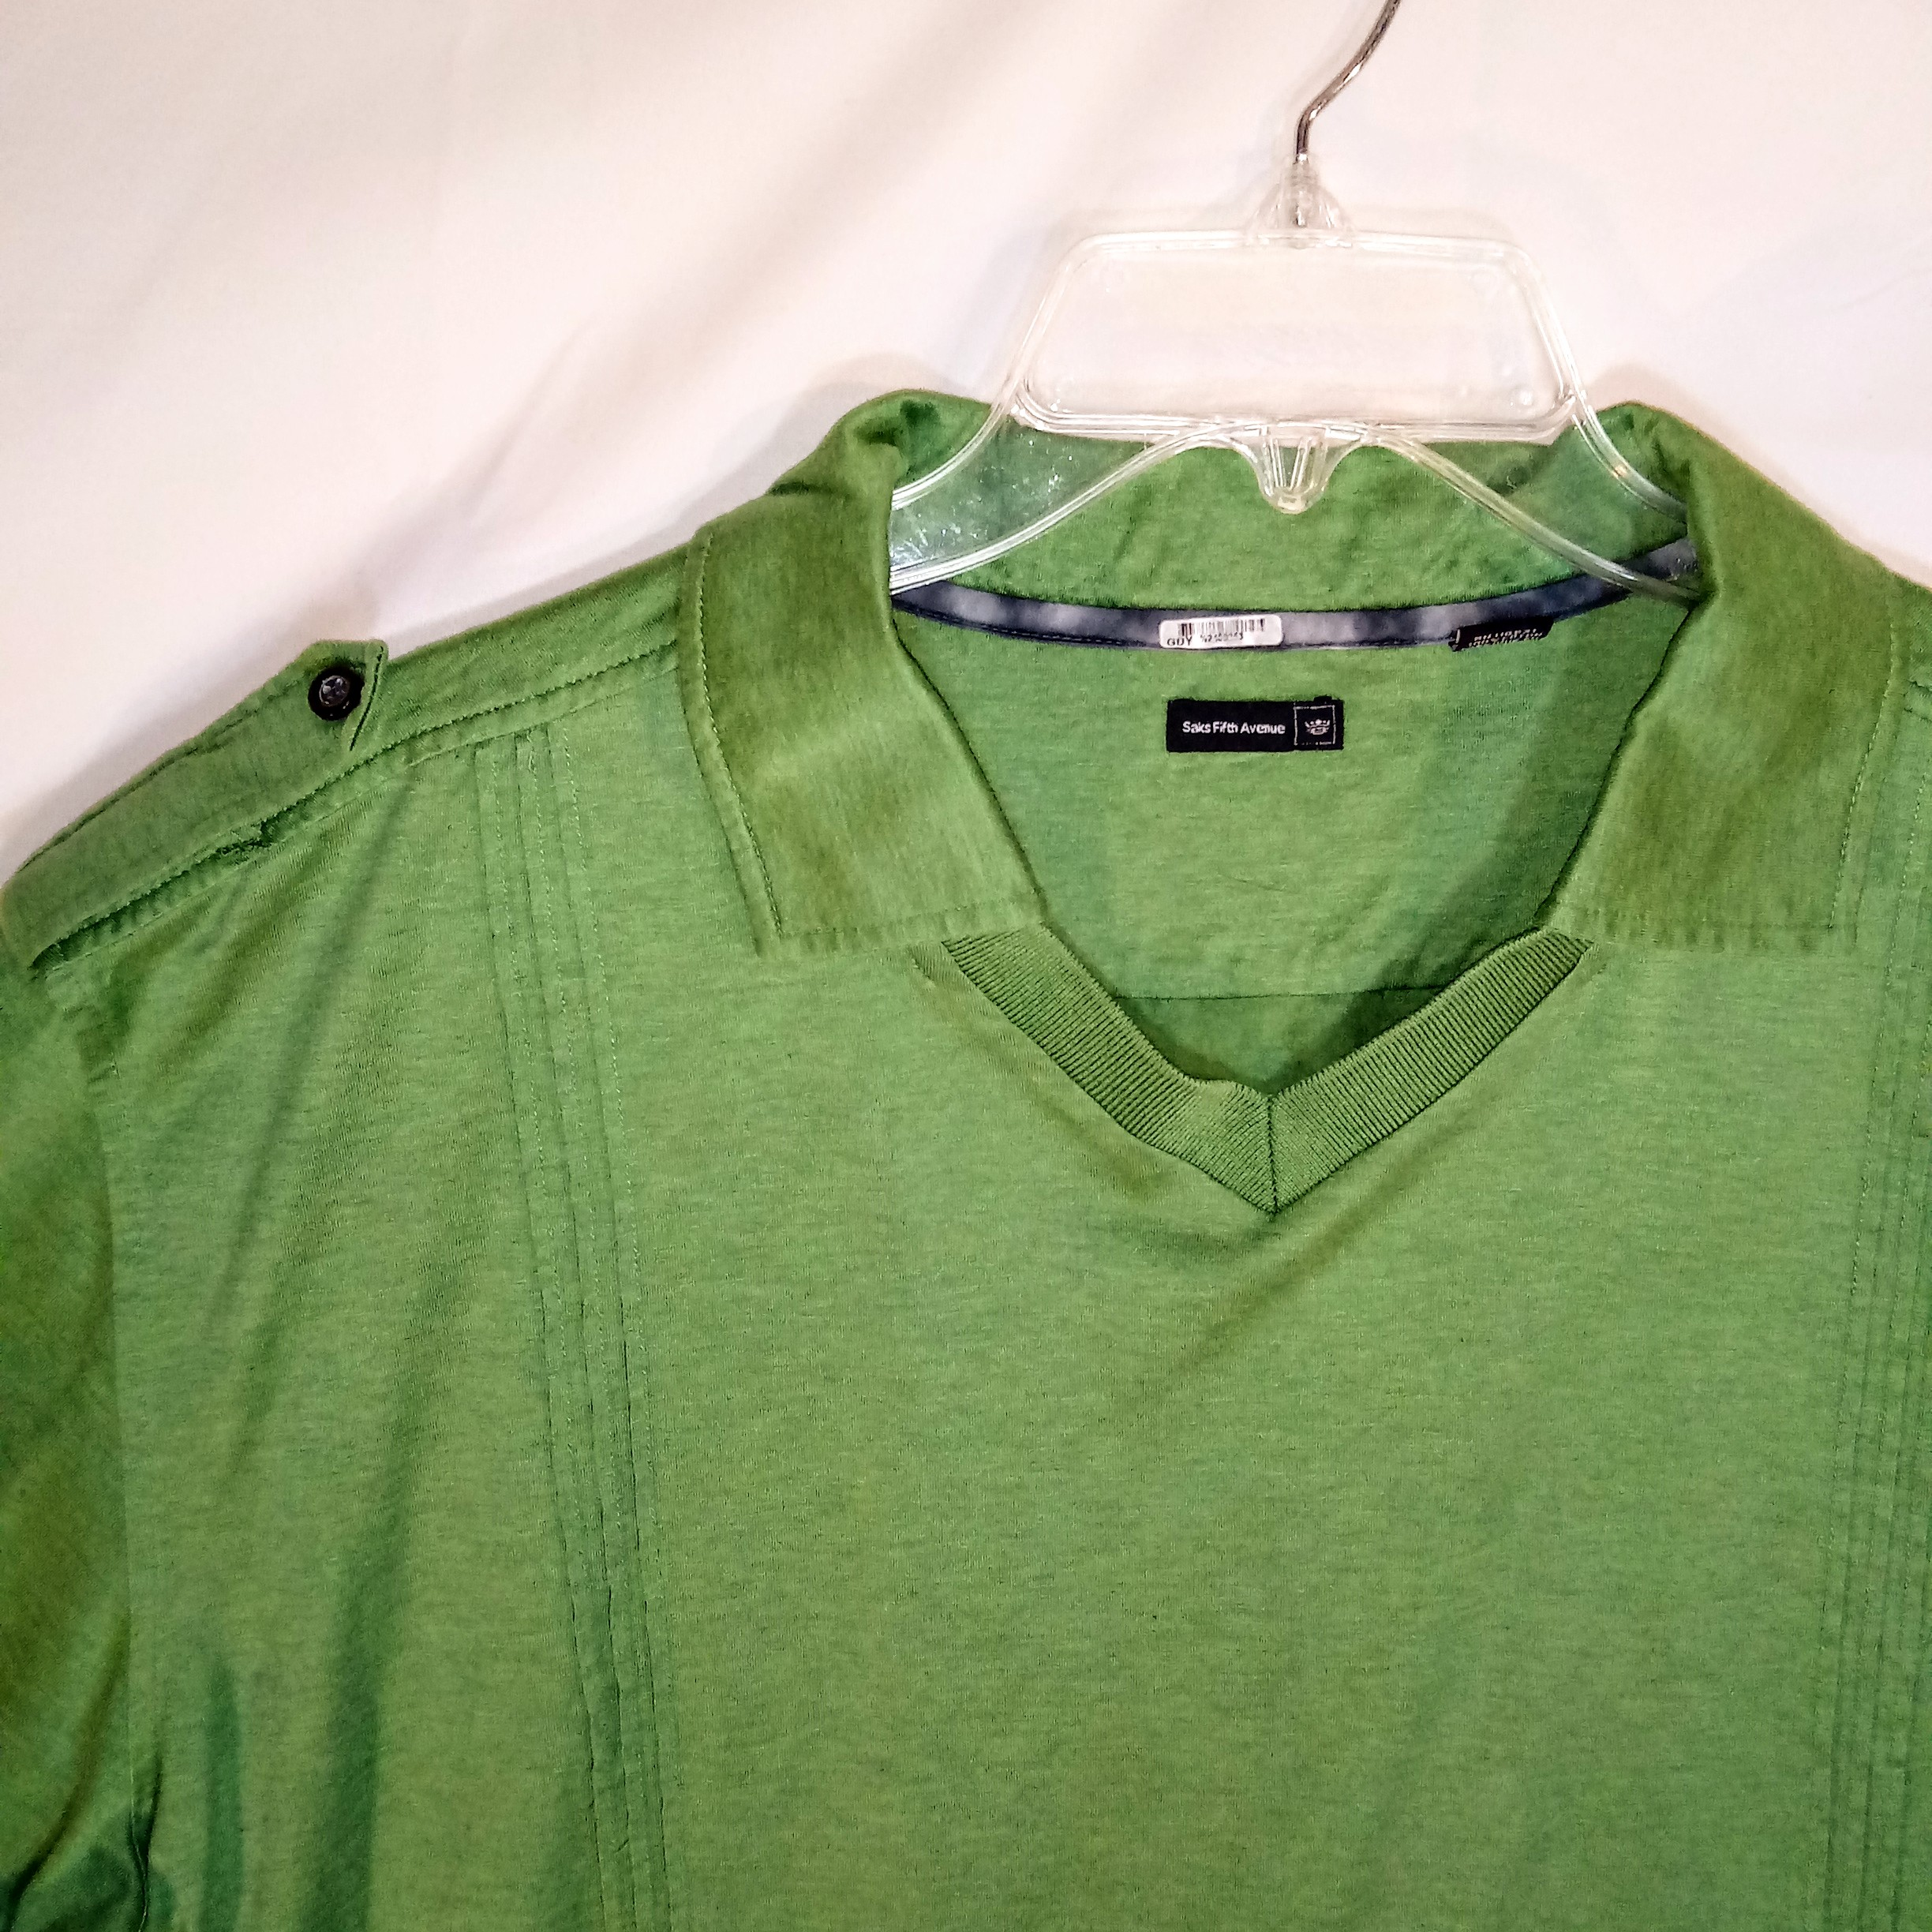 Saks Fifth Avenue Xl Saks Fifth Avenue Green Collared Shirt Size